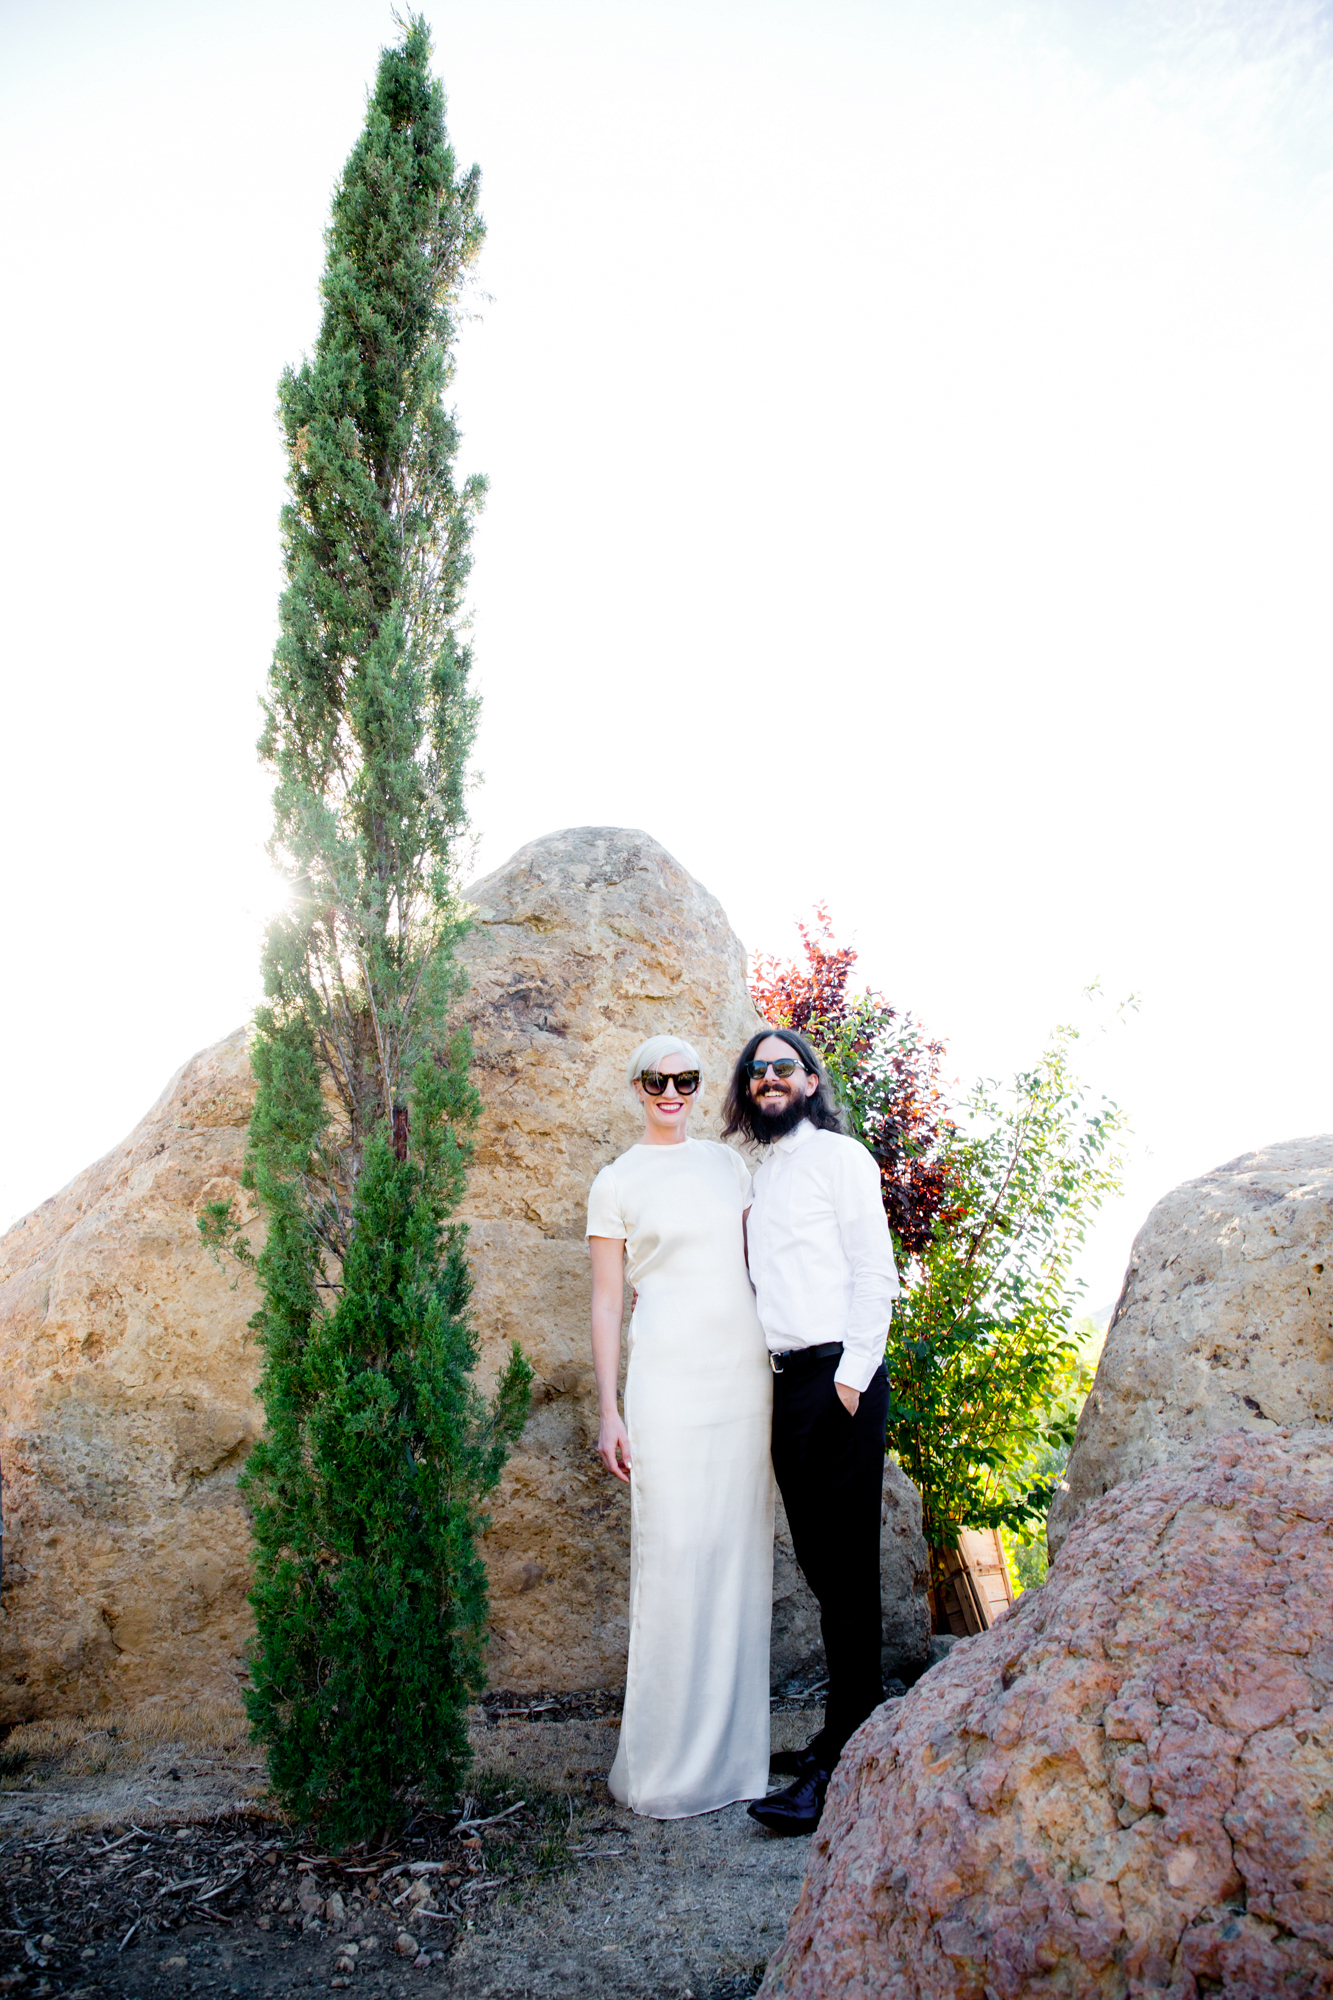 017_CarlyGaebe_SteadfastStudio_WeddingPhotography_Malibu_LosAngeles_LA_California_Winery_Hilltop_CieloFarms_LanvinDress_Vineyard.jpg